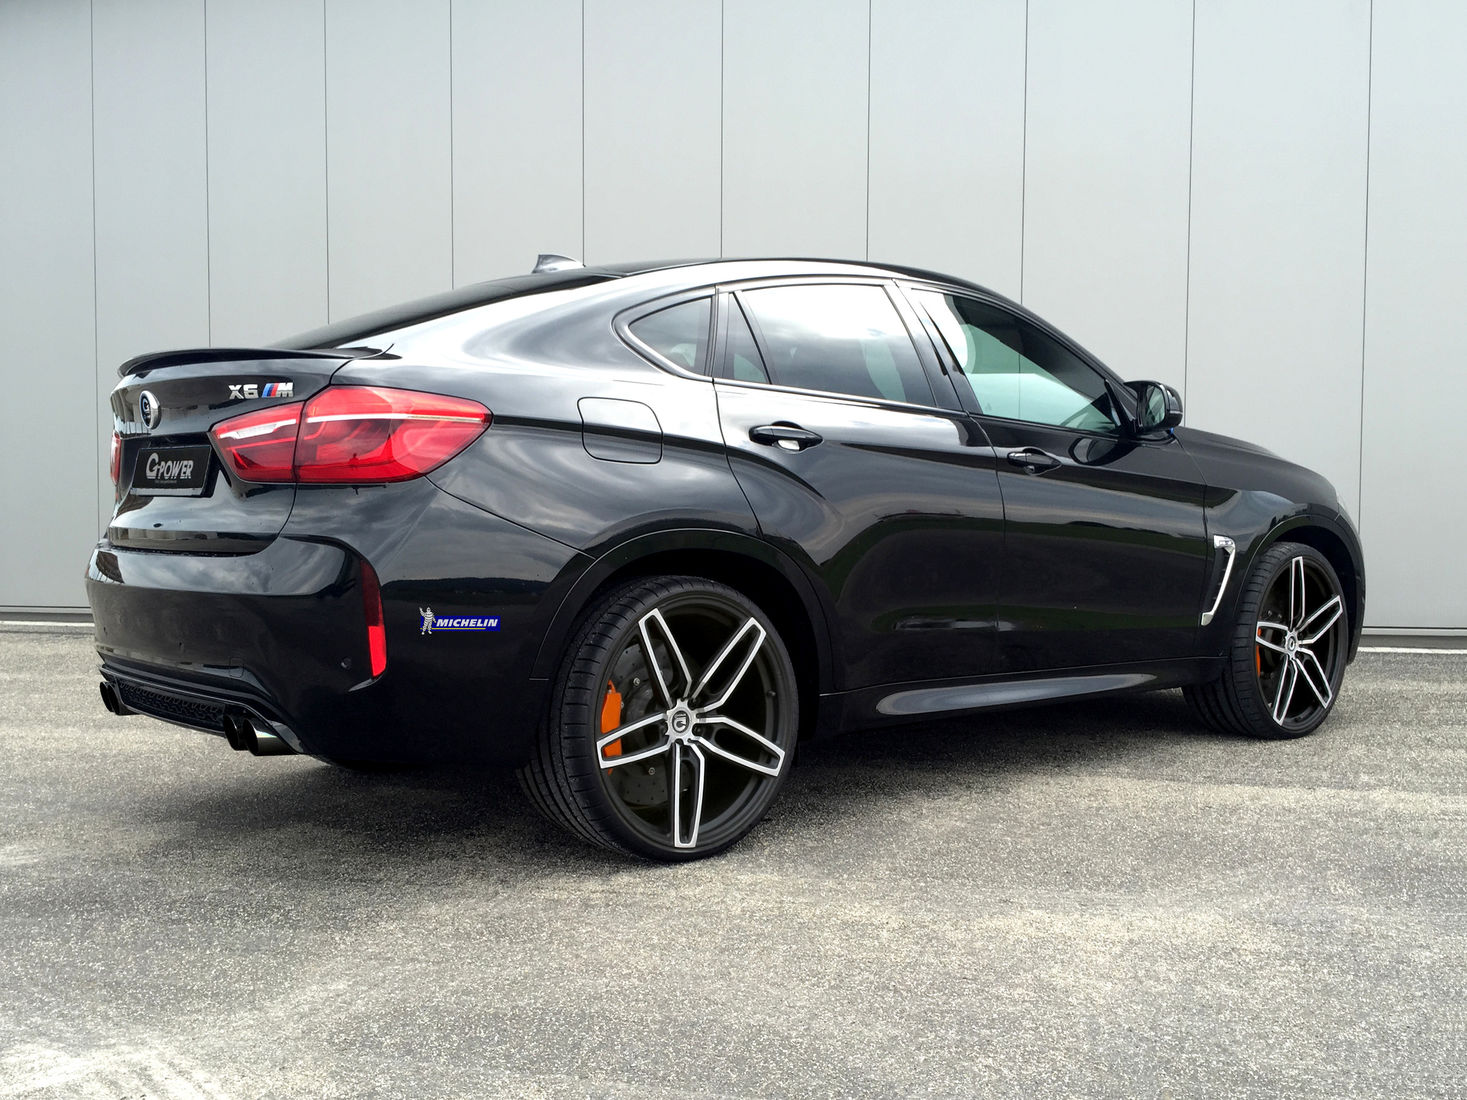 G Power Bmw X6 M With 650 Horsepower And 300 Km H Top Speed